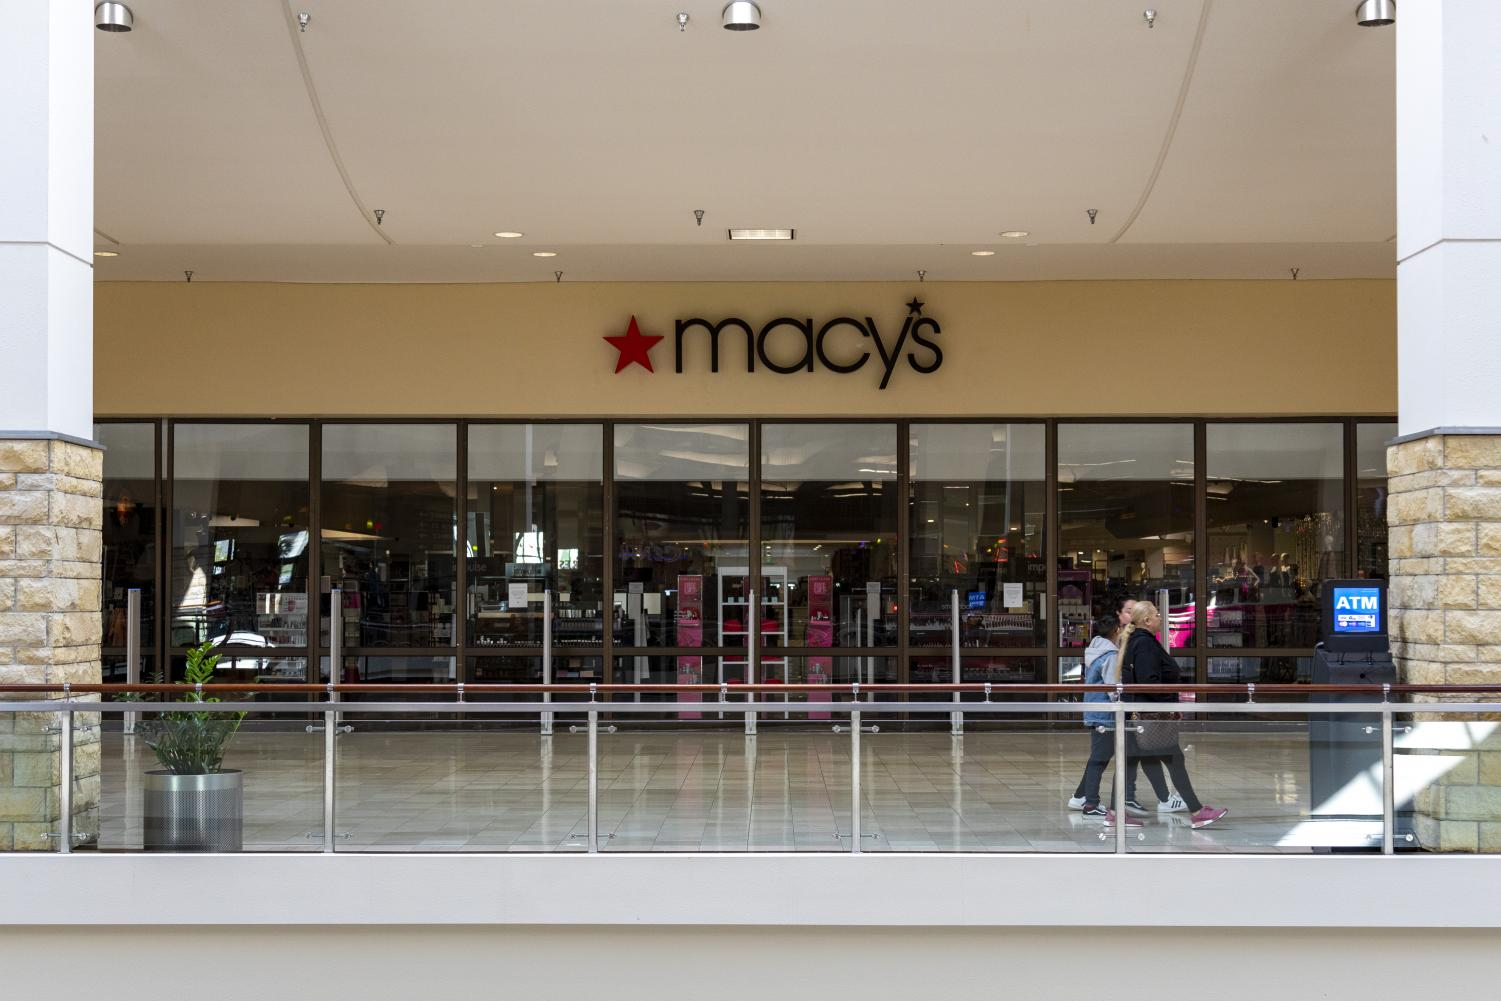 On+Tuesday%2C+March+17%2C+Macy%27s+temporarily+shuttered+all+of+its+department+stores+nationwide.